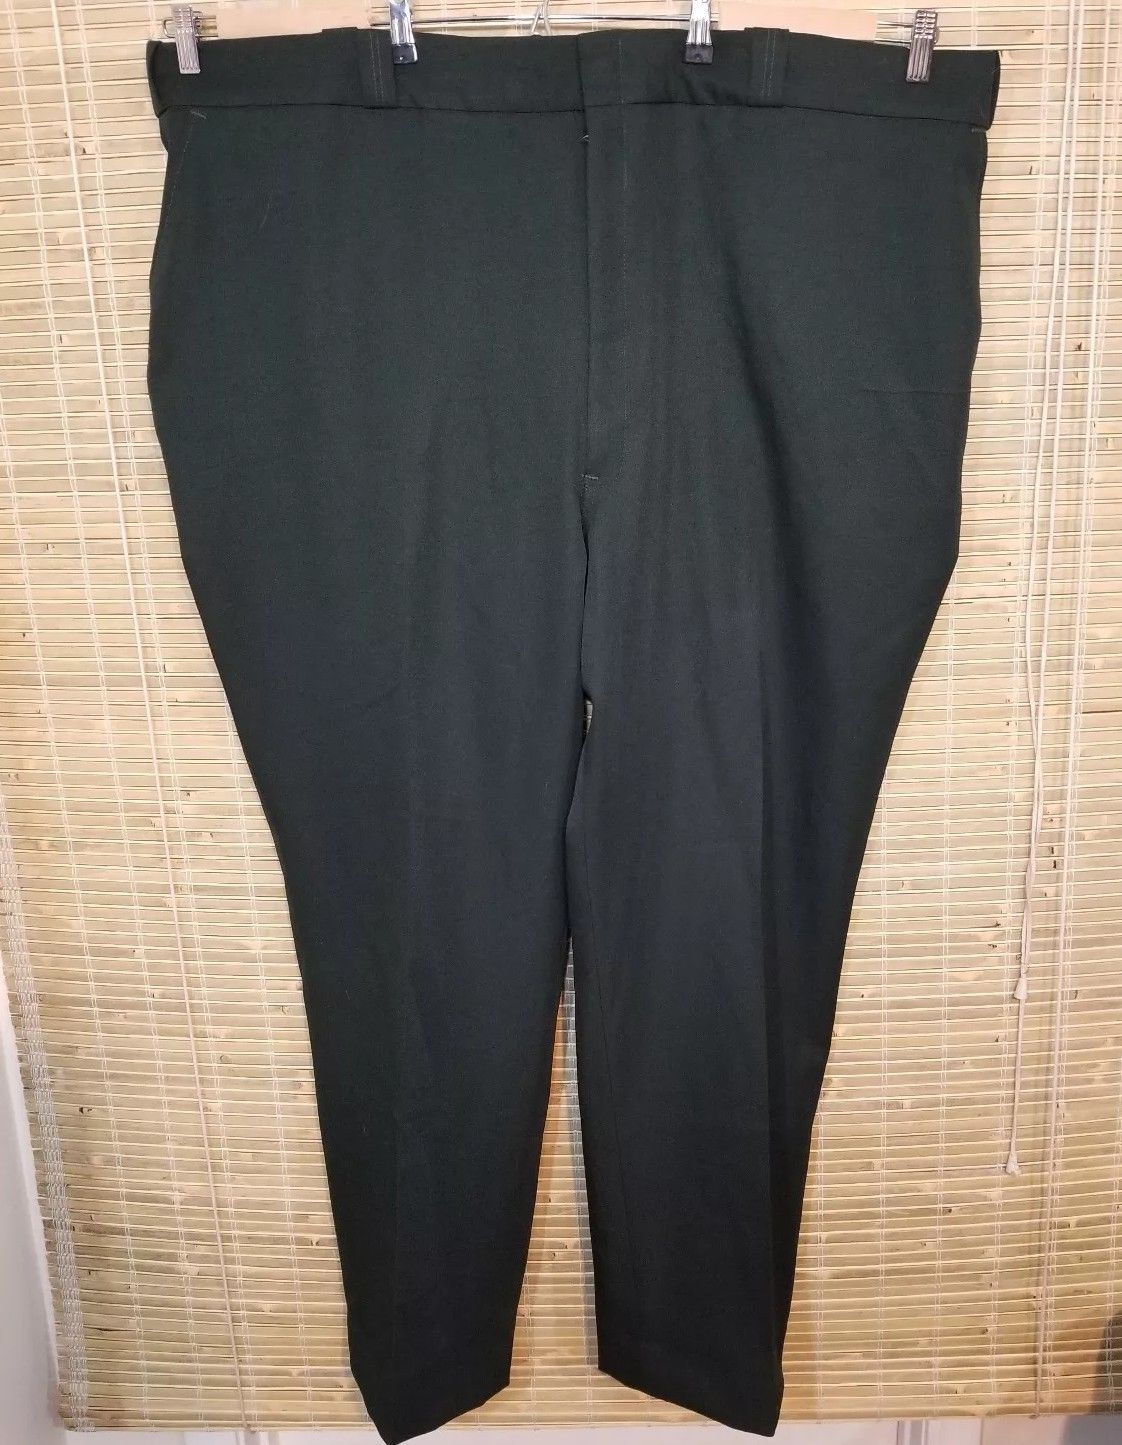 Primary image for ELBECO MEN'S UNIFORM PANTS HUNTER GREEN HEMMED 54 X 32 100% POLYESTER RN 25214